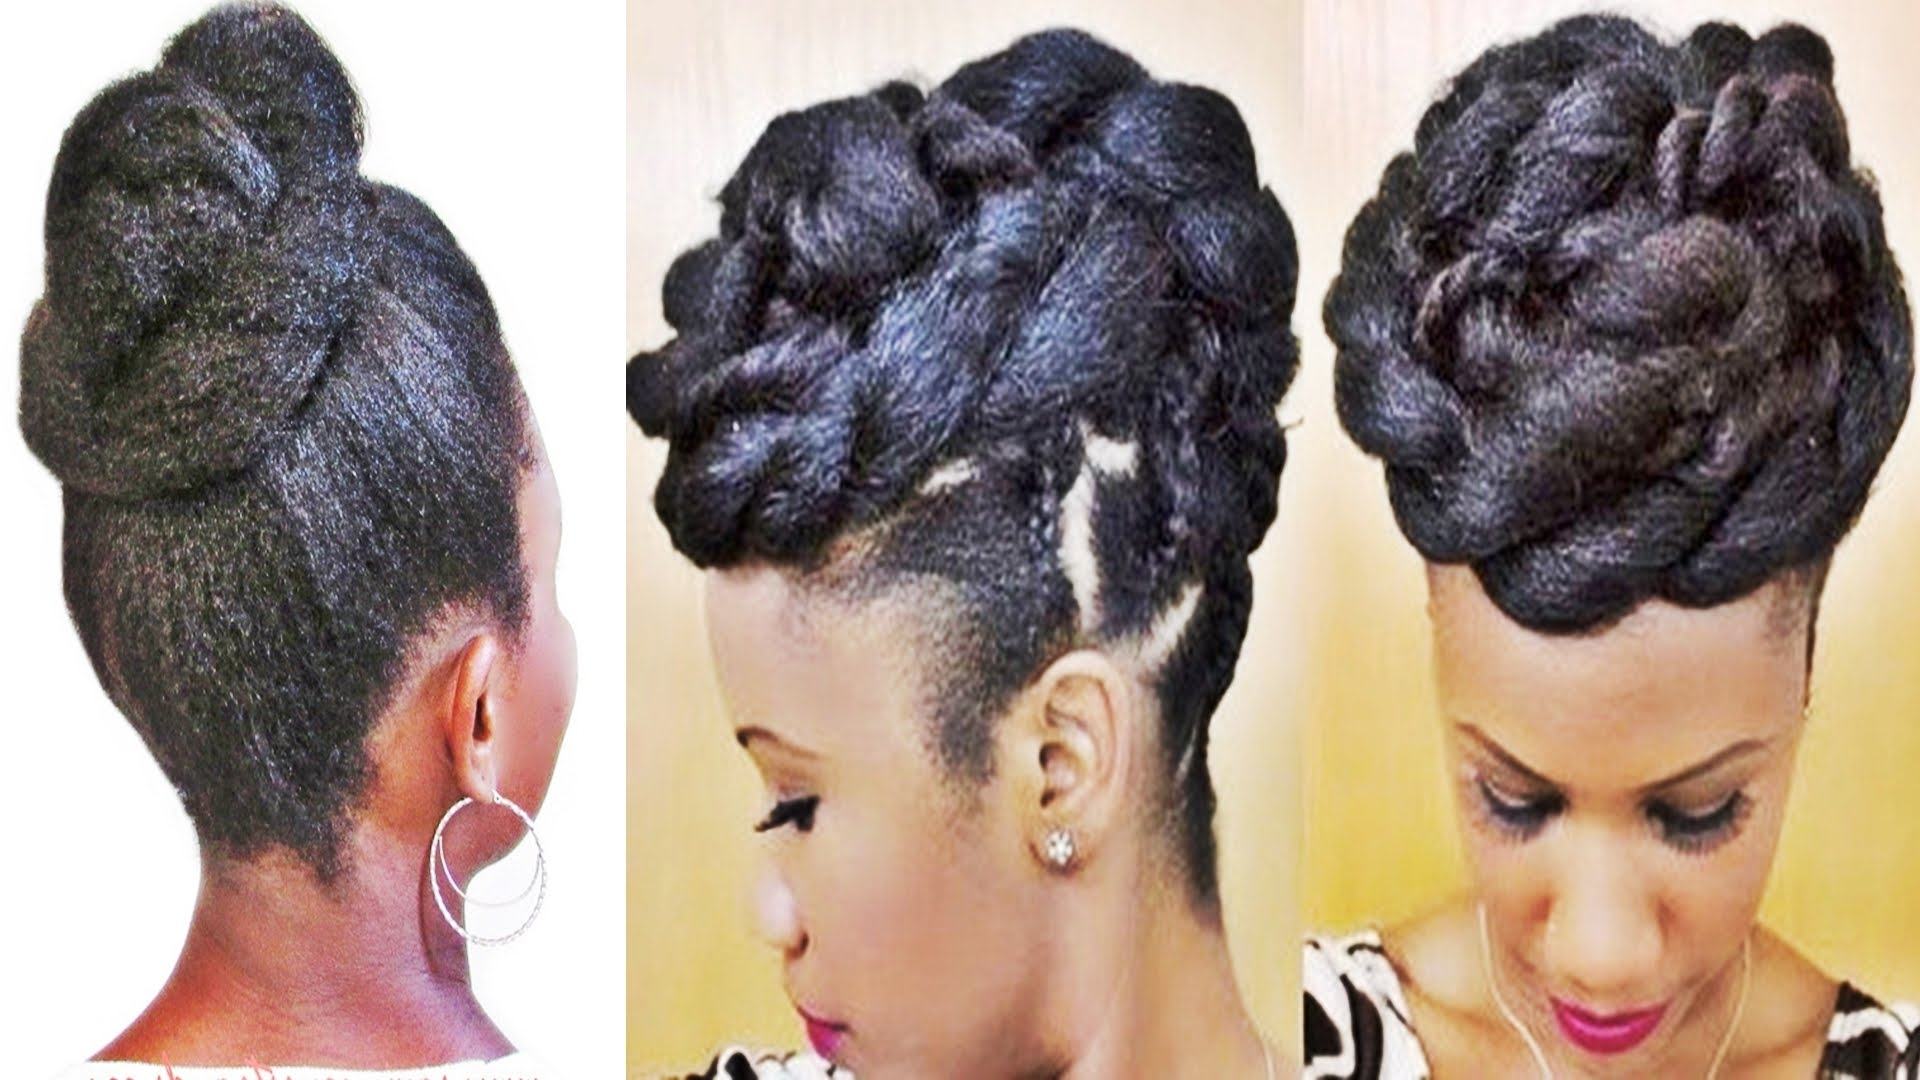 Braids And Twists Updo Hairstyle For Black Women – Youtube With Black Hair Updo Hairstyles With Bangs (View 8 of 15)